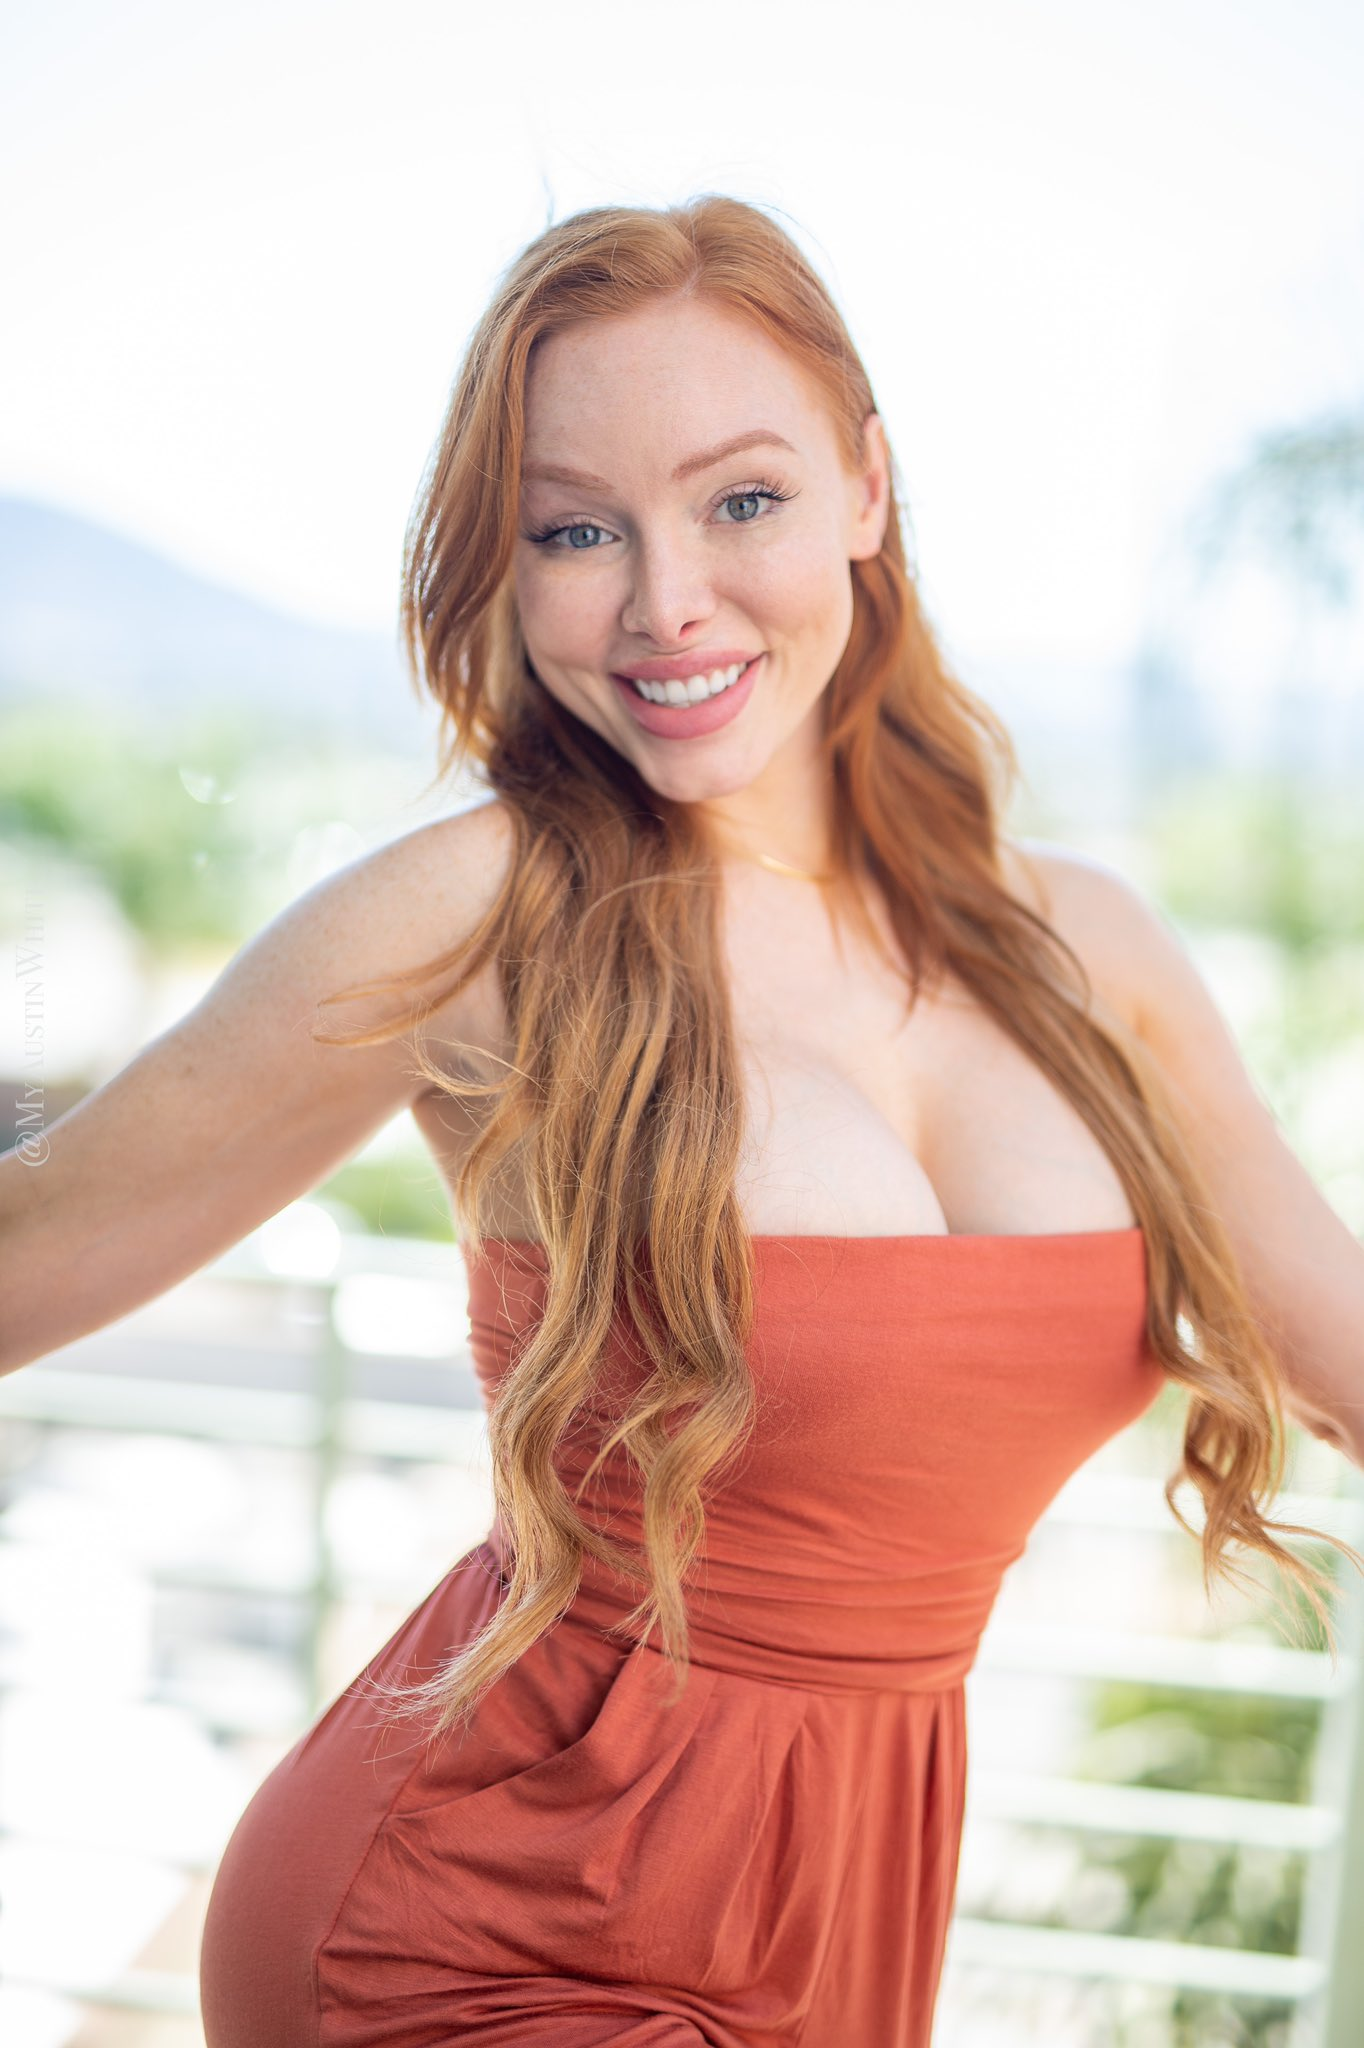 Austin White - Busty Red hair Model Nudes - Fapdungeon